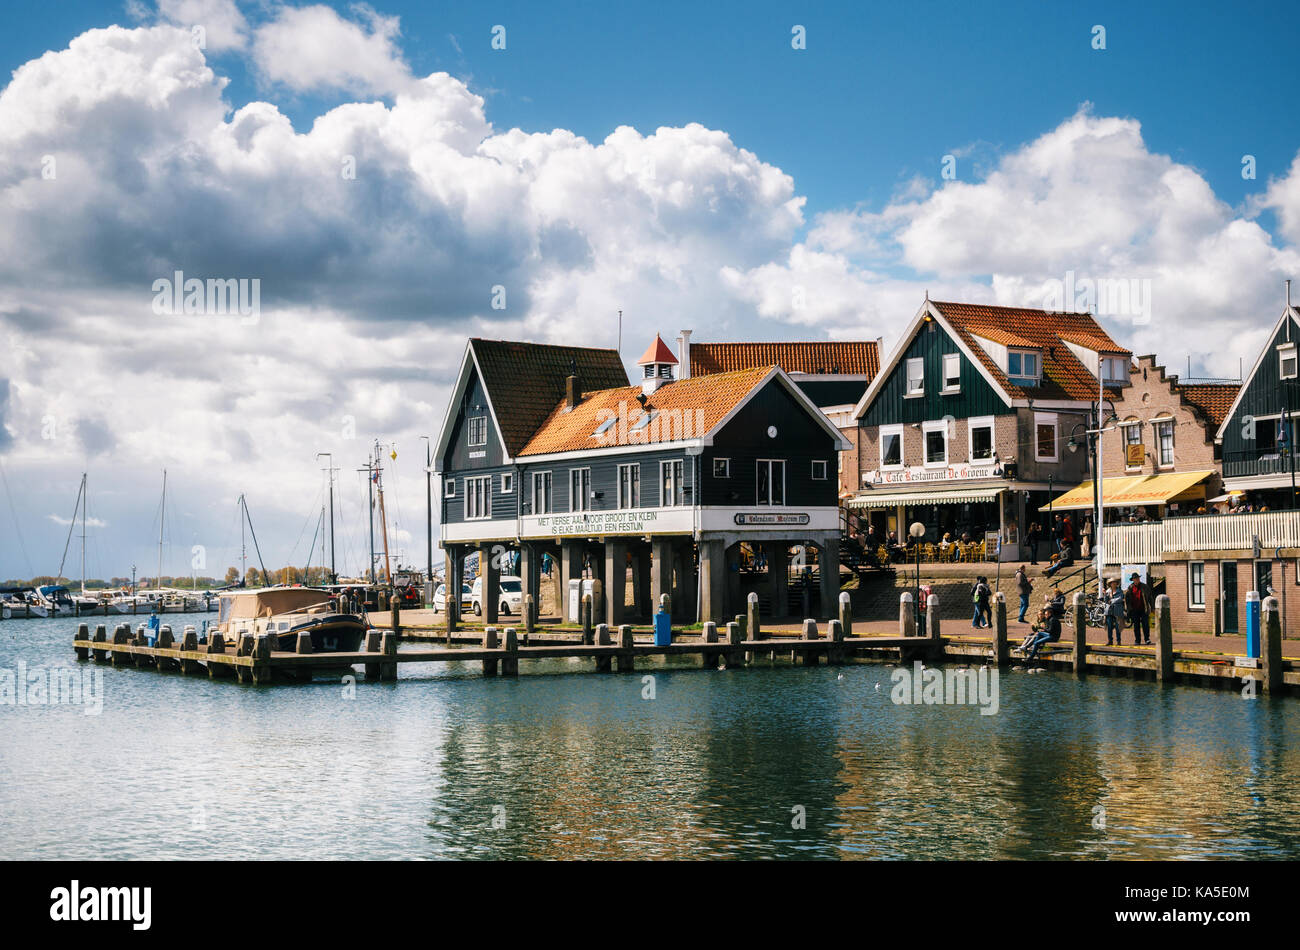 Edam Netherlands Map%0A Volendam  Netherlands     April        Typical traditional houses on  stilts on the